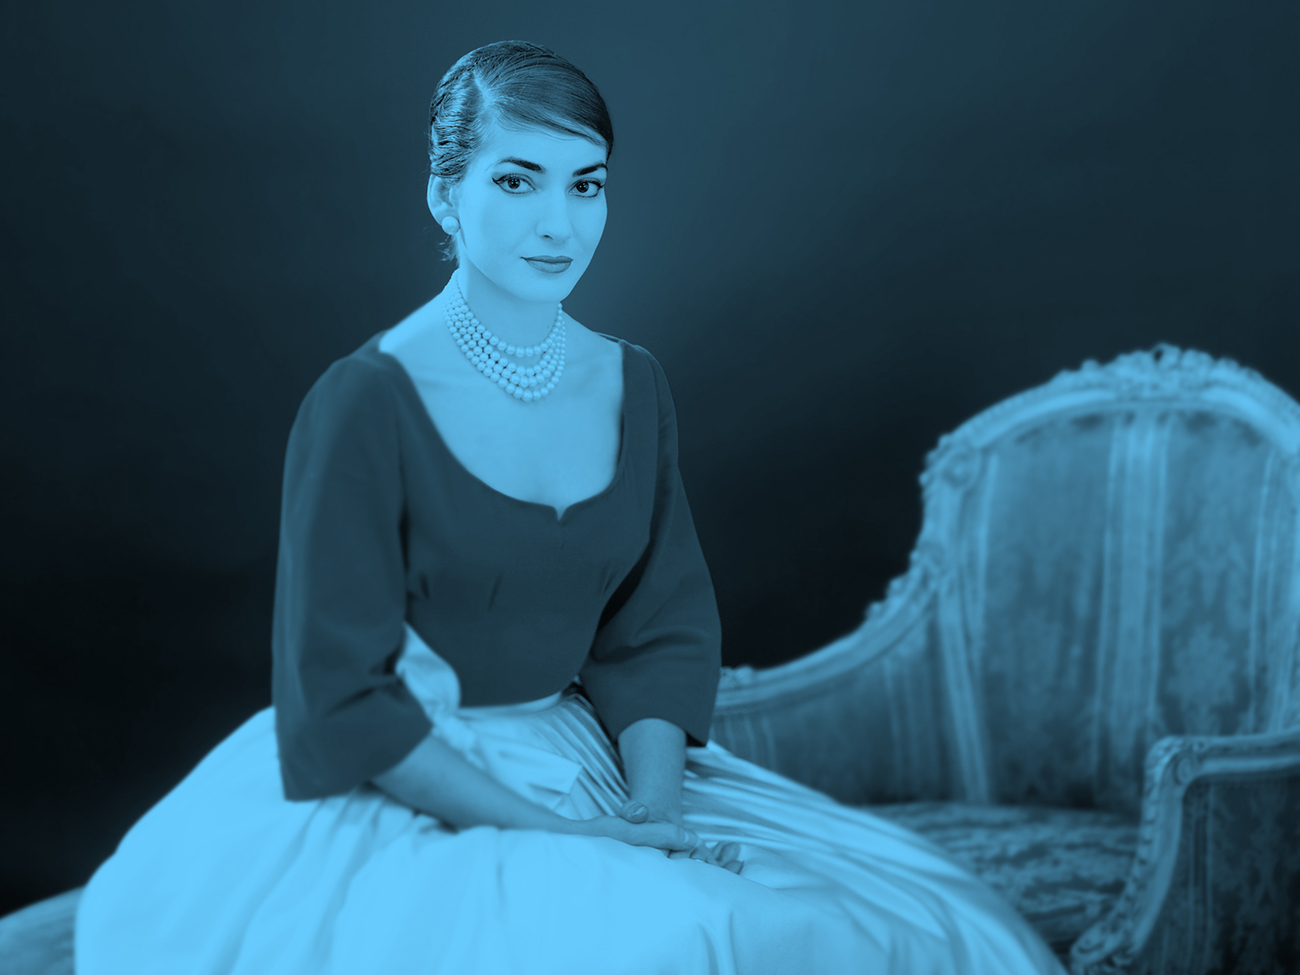 Maria by Callas © Fonds de Dotation Maria Callas